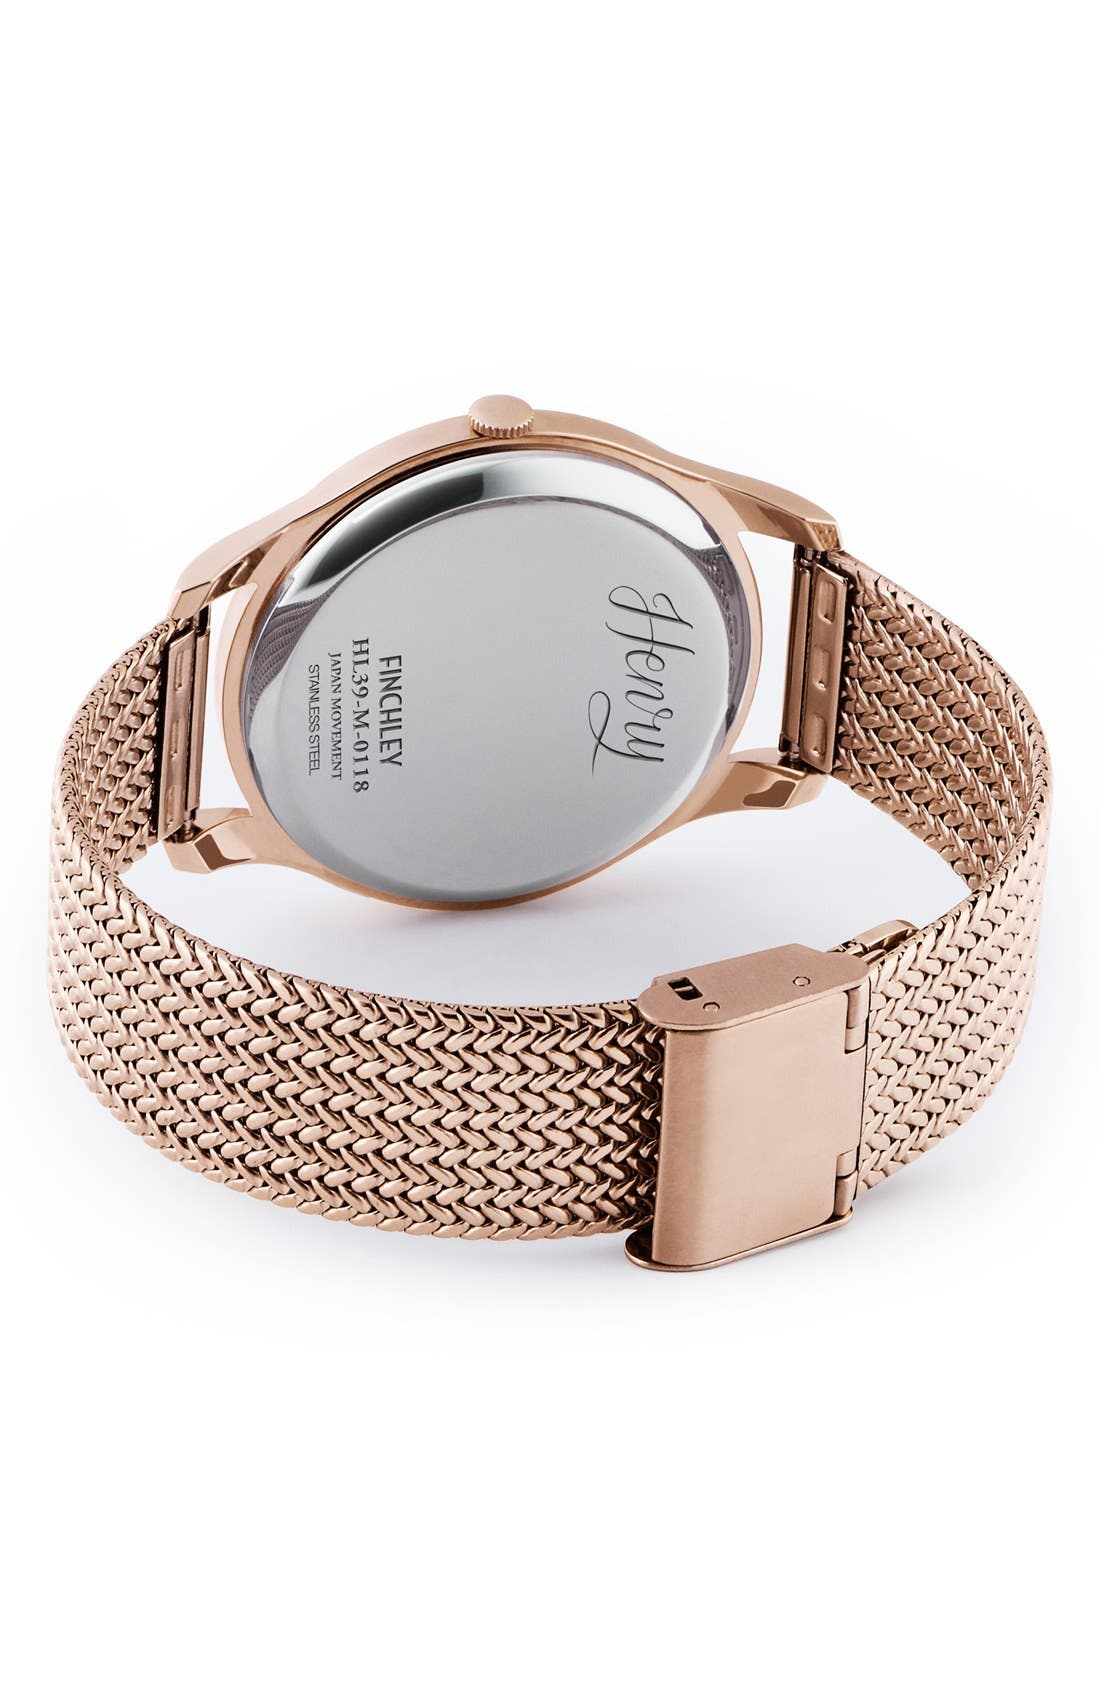 'Finchley' Analog Mesh Strap Watch, 38mm,                             Alternate thumbnail 3, color,                             ROSE GOLD/ SLATE GREY